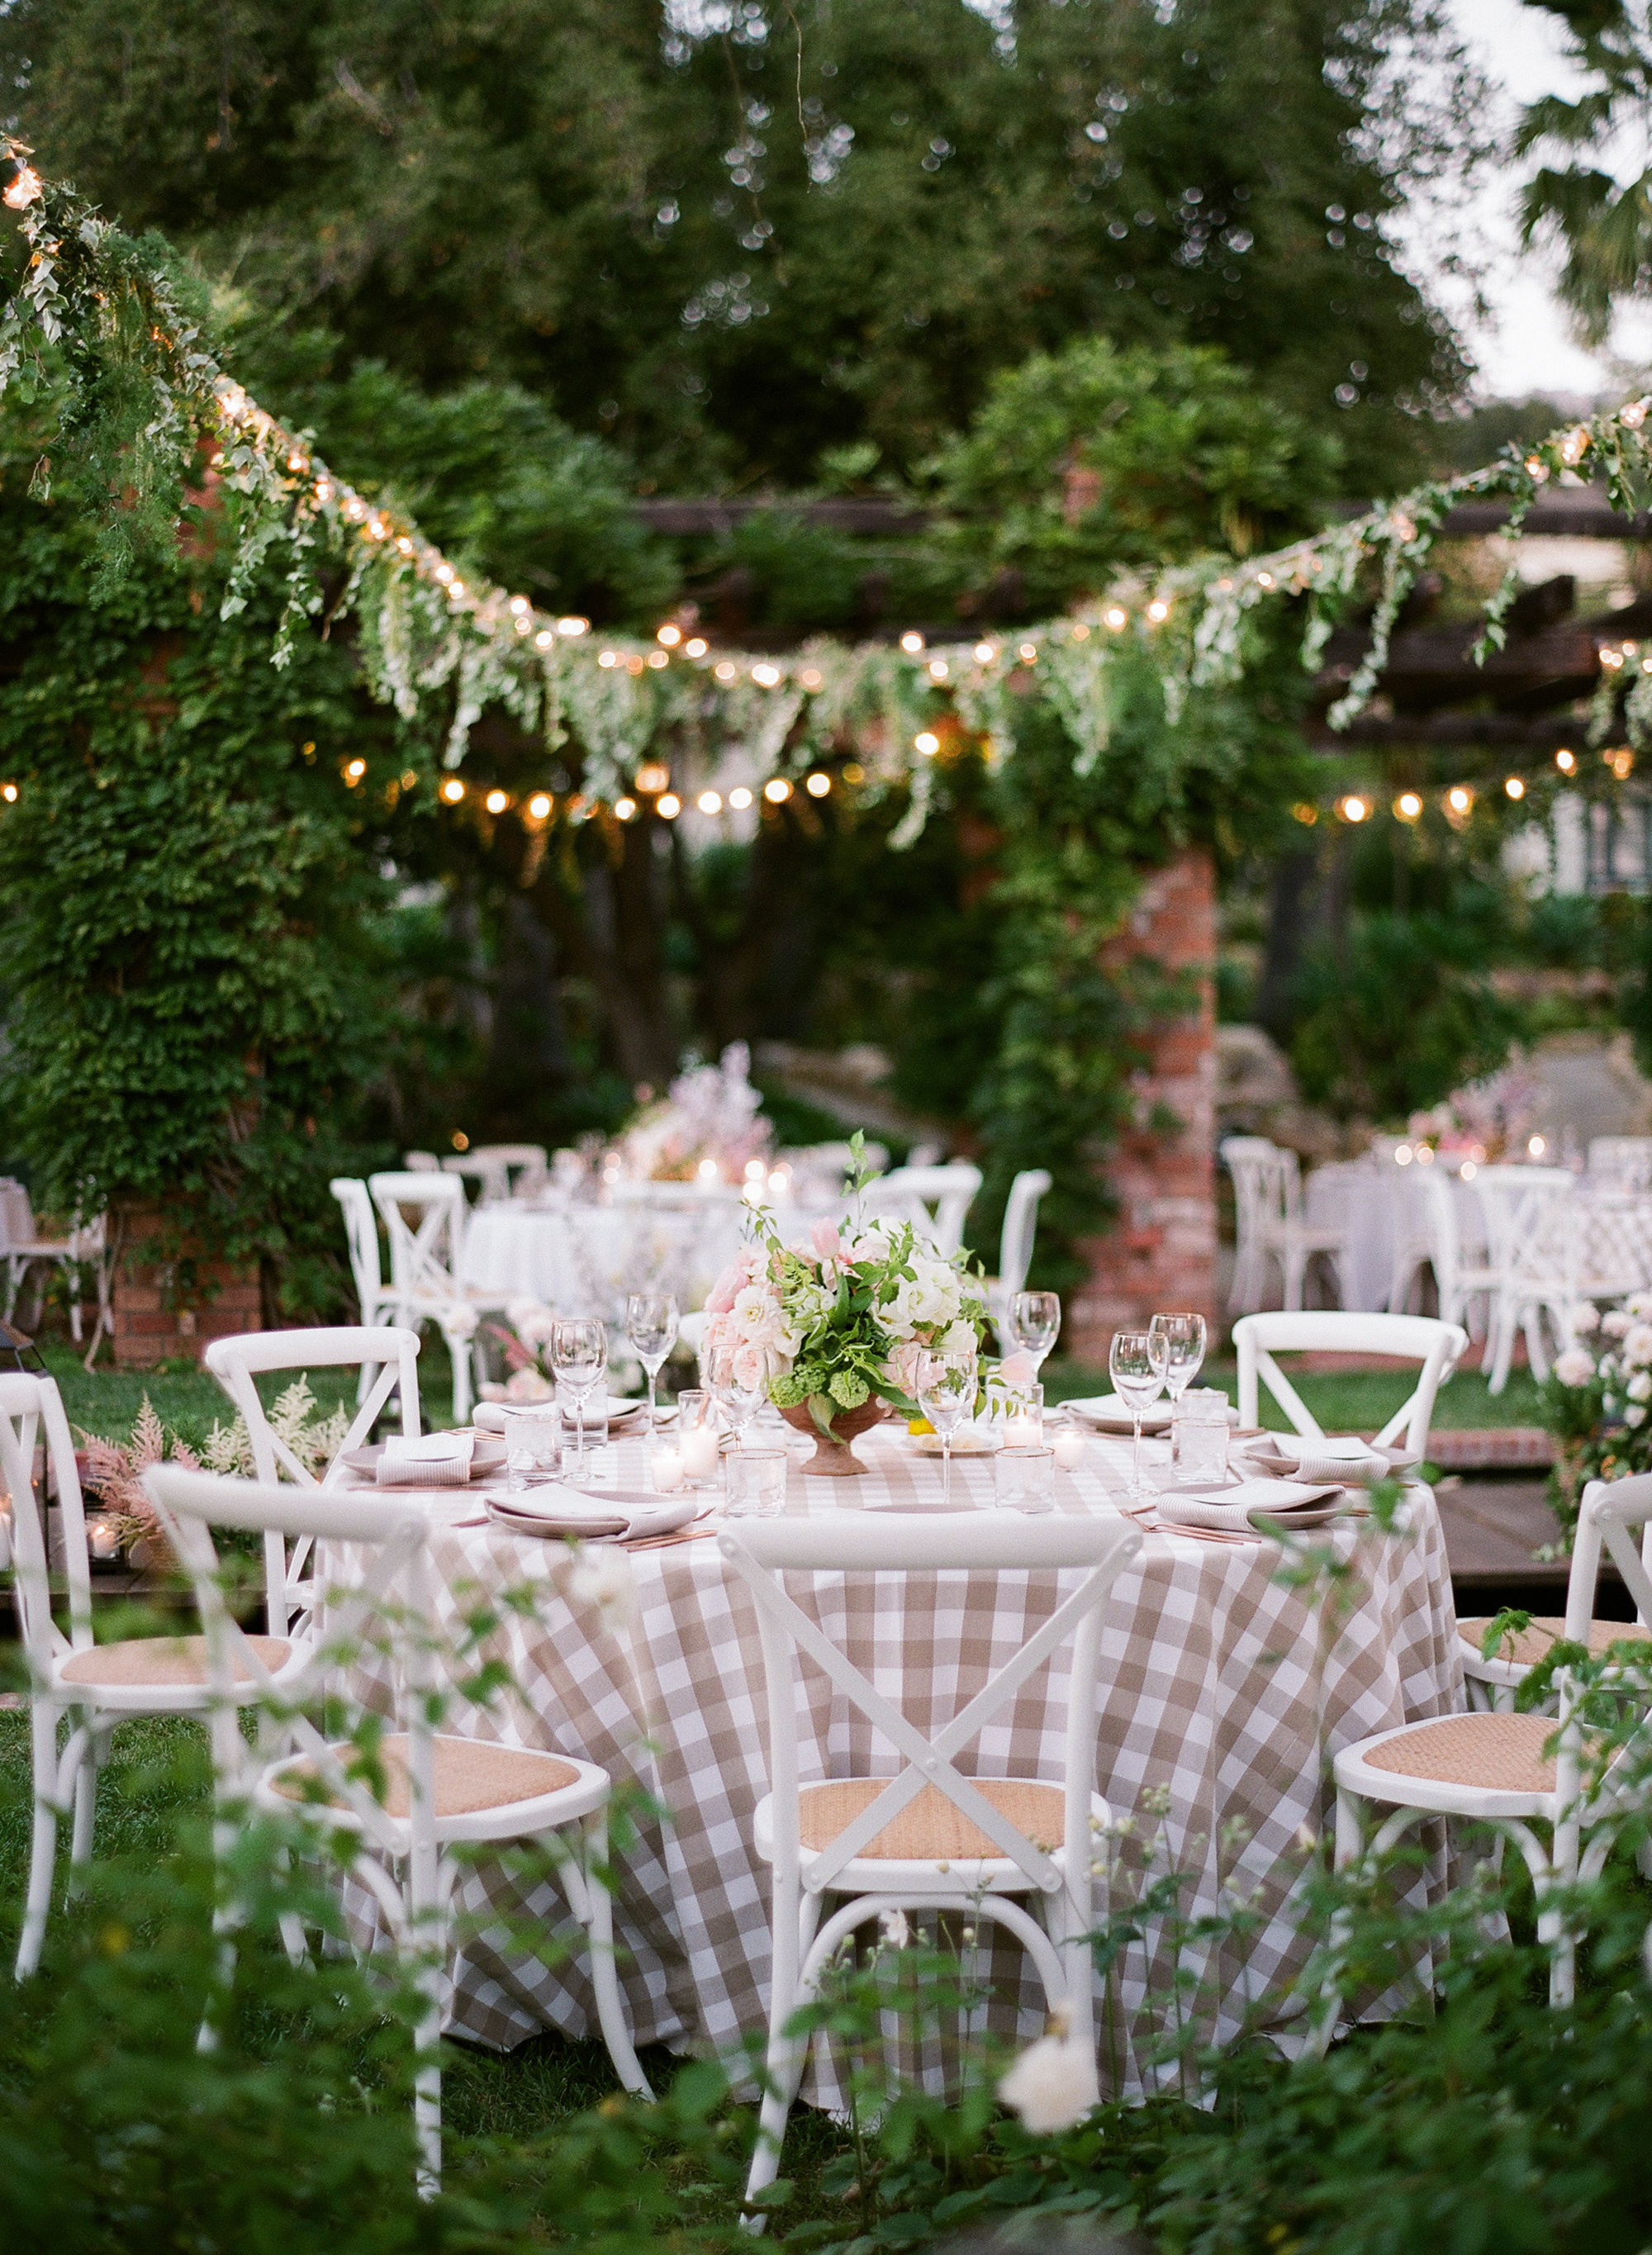 katy michael wedding reception table gingham linens